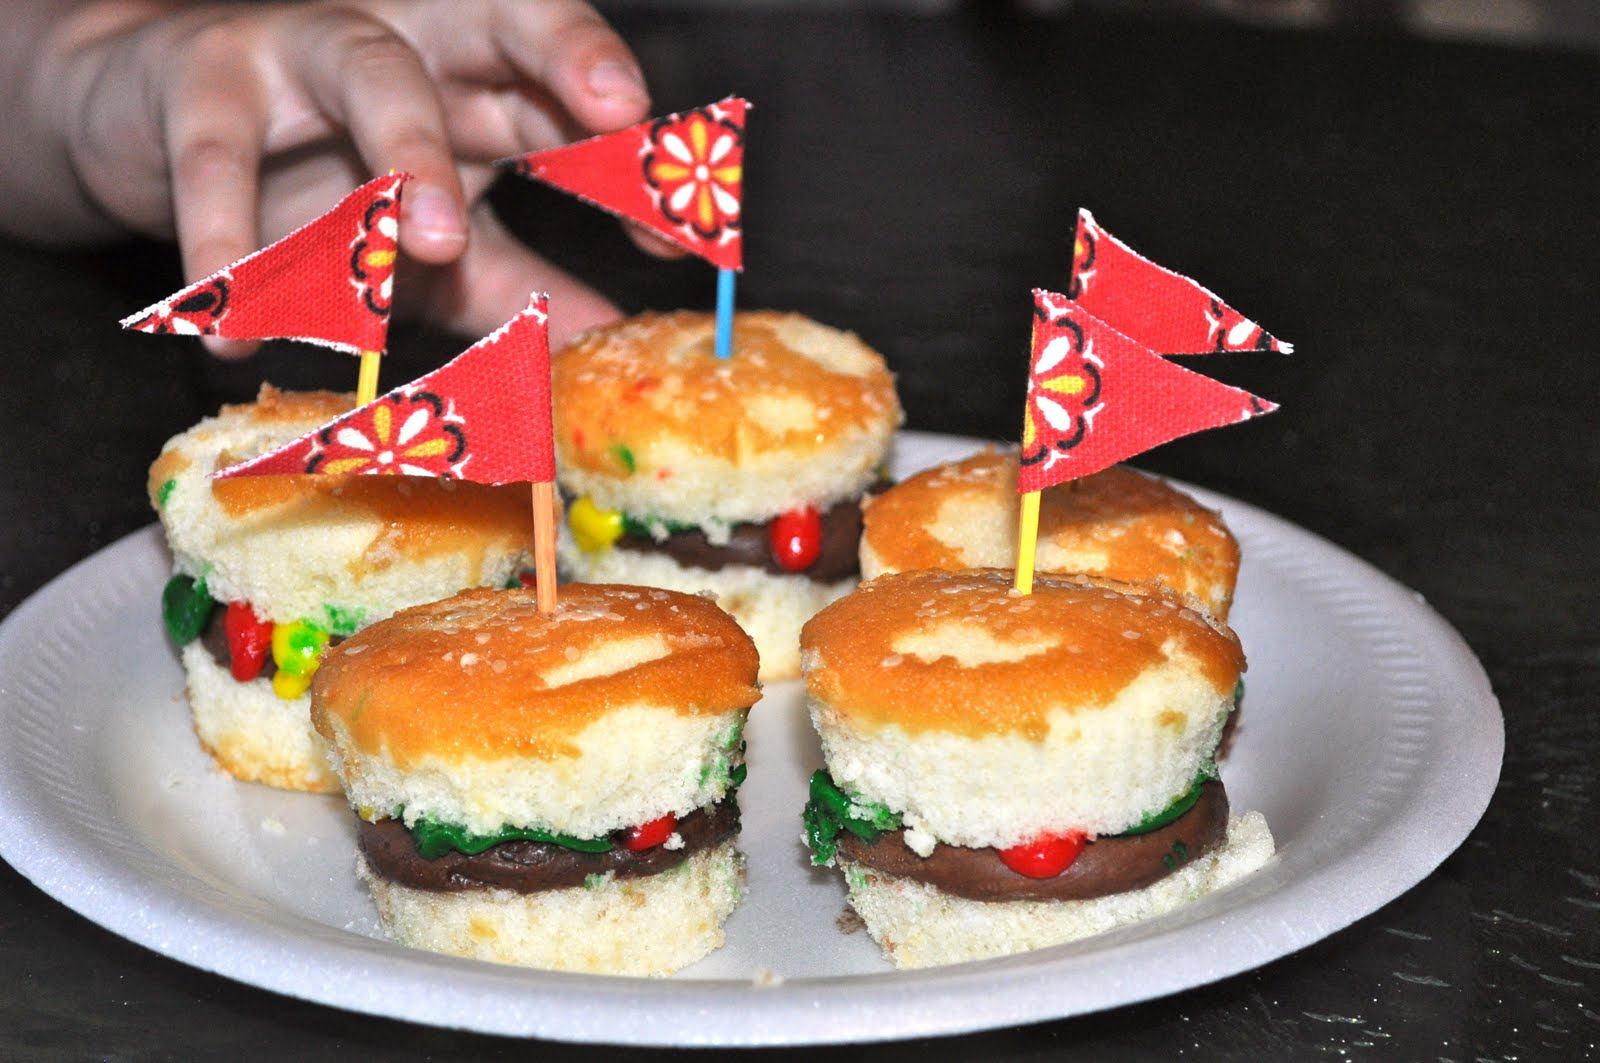 ewe hooo!: Lake Staple— Hamburger Cupcakes and Sweet Tomato BBQ